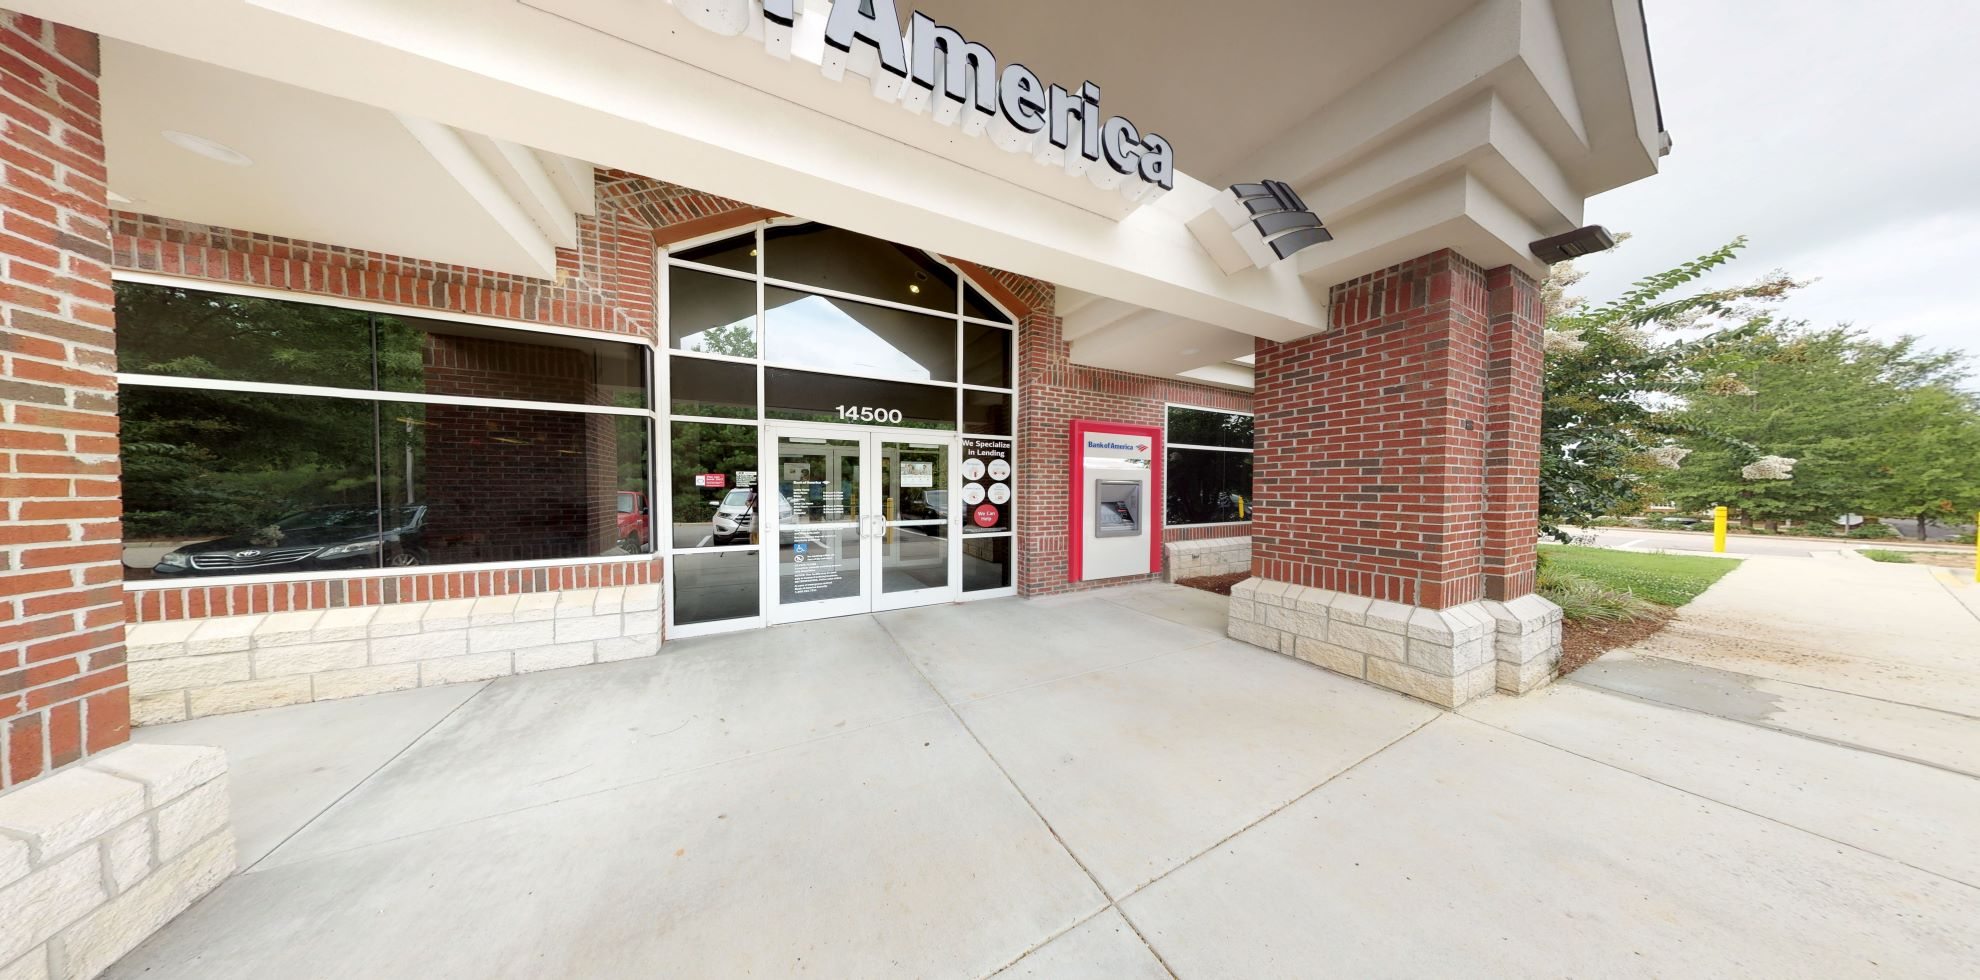 Bank of America financial center with drive-thru ATM and teller   14500 Falls Of Neuse Rd, Raleigh, NC 27614